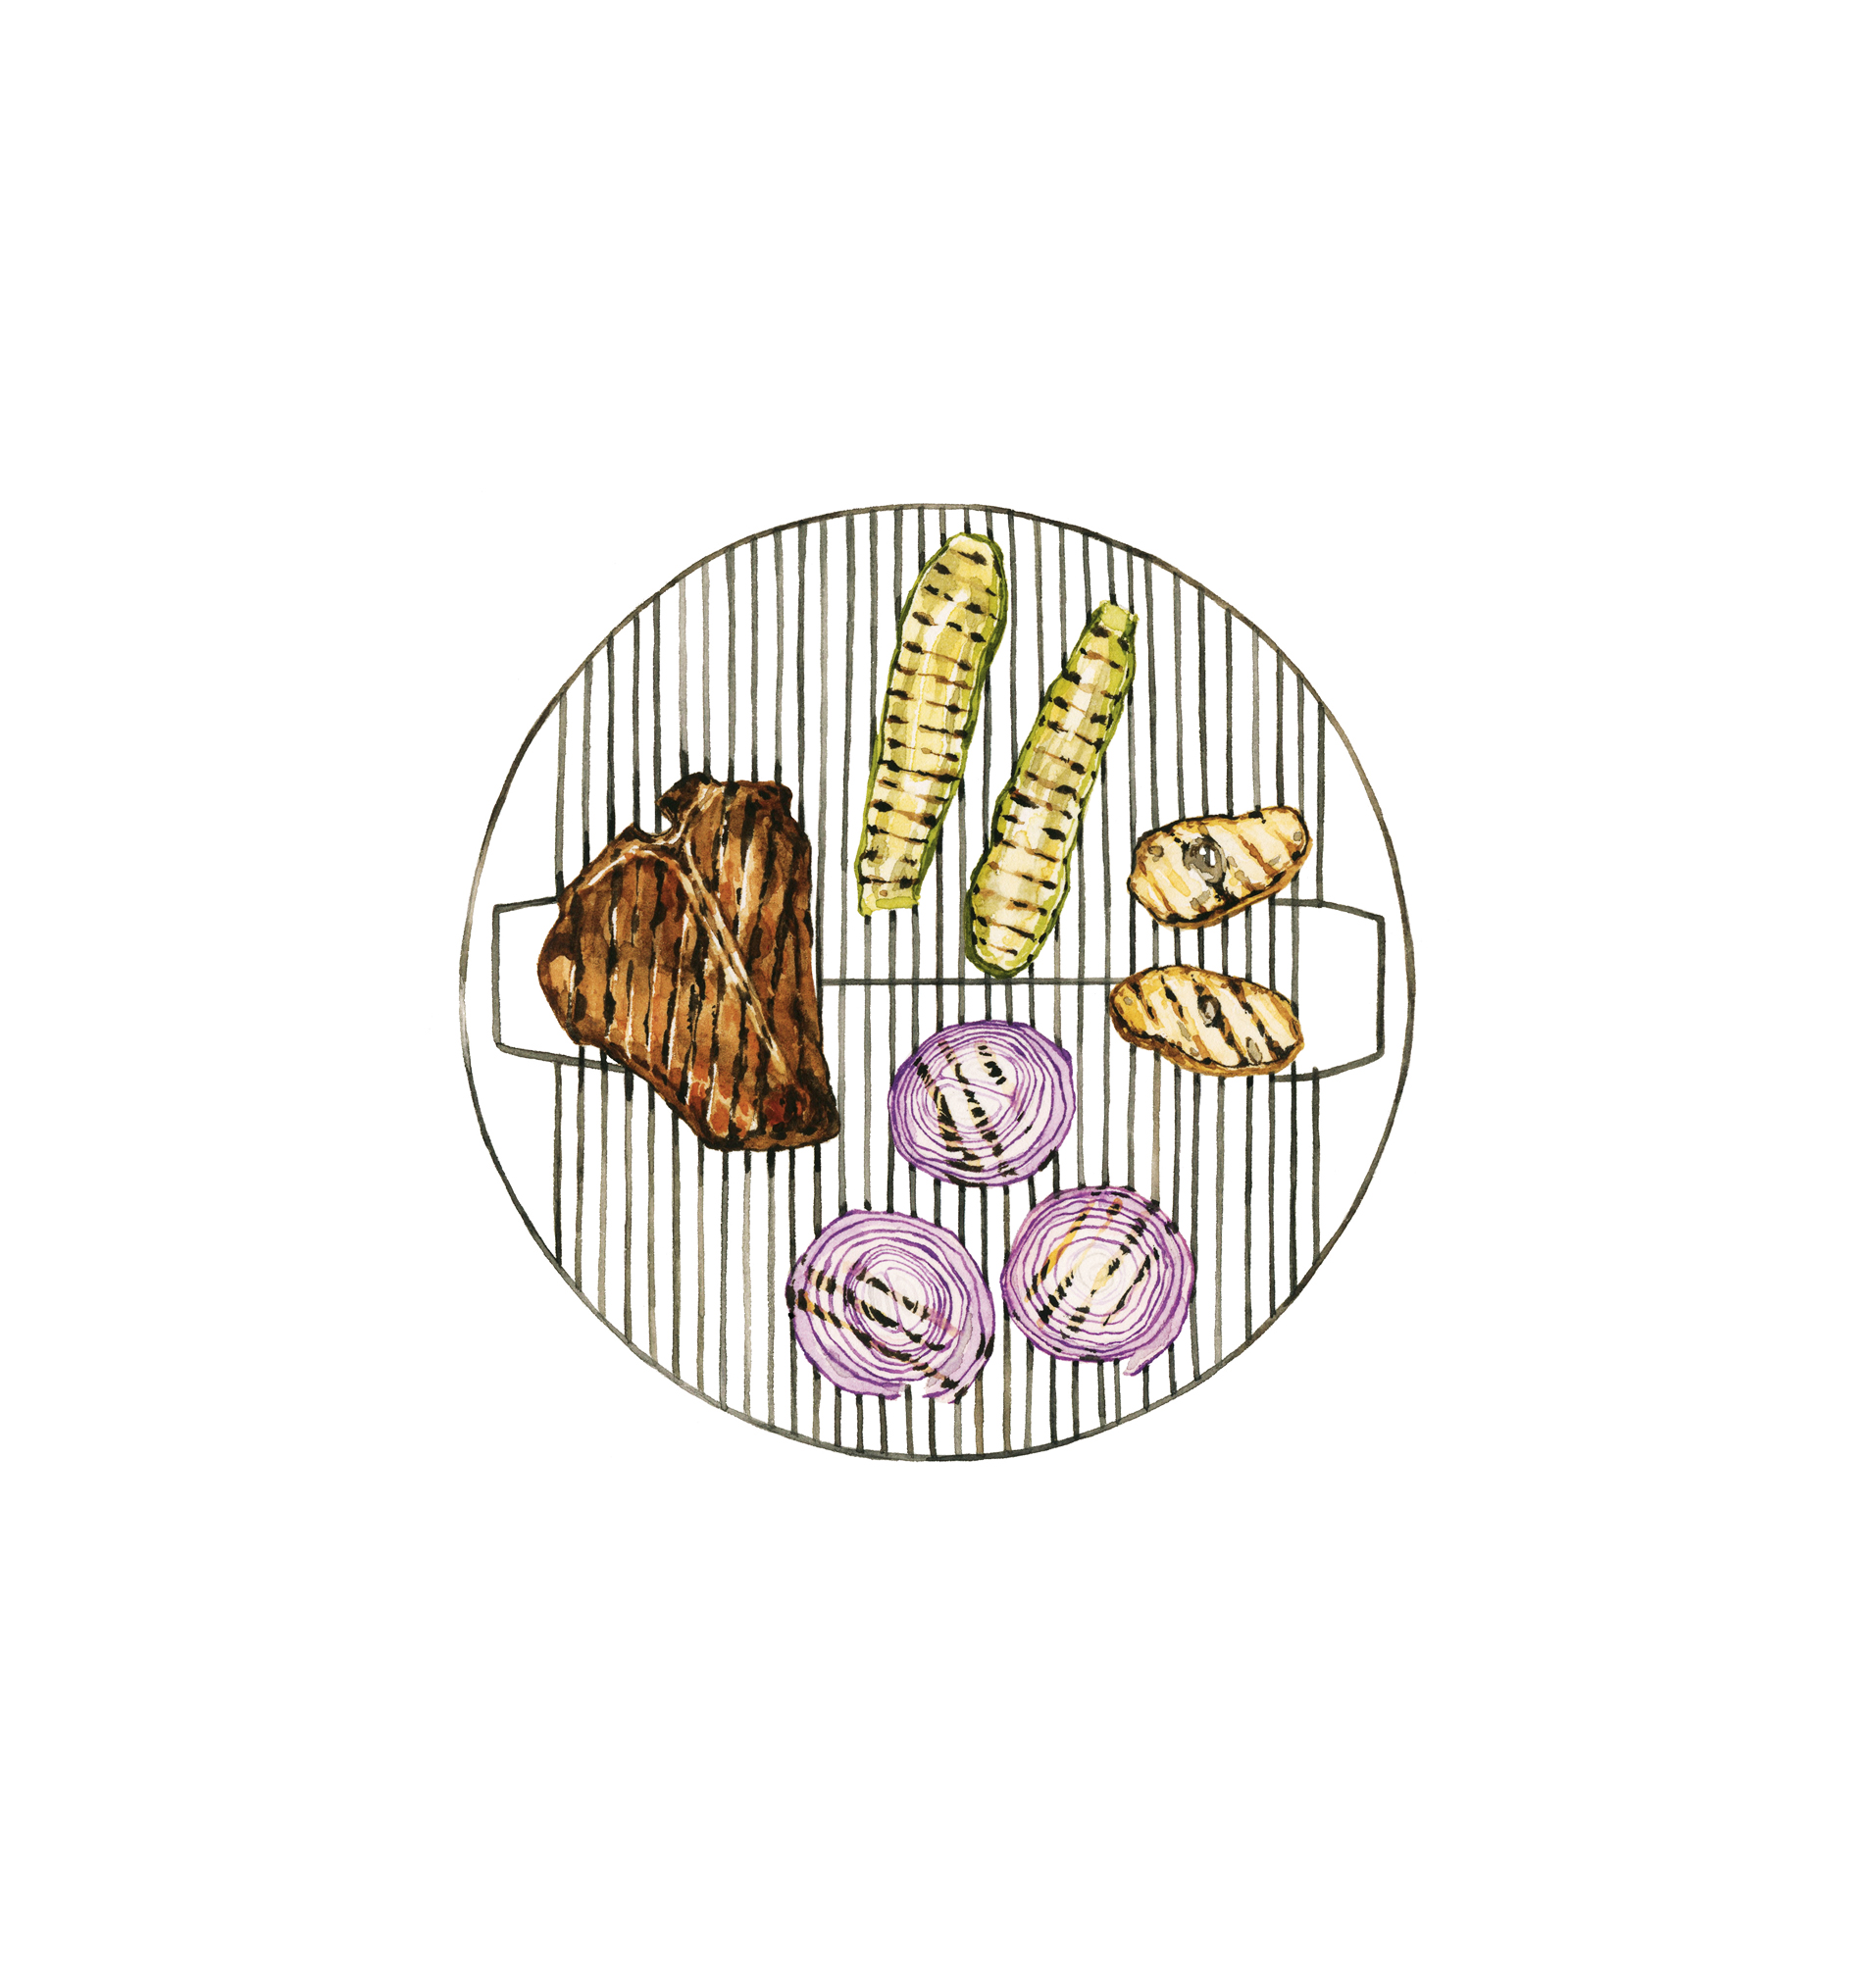 Illustration of meat and veggies on grill